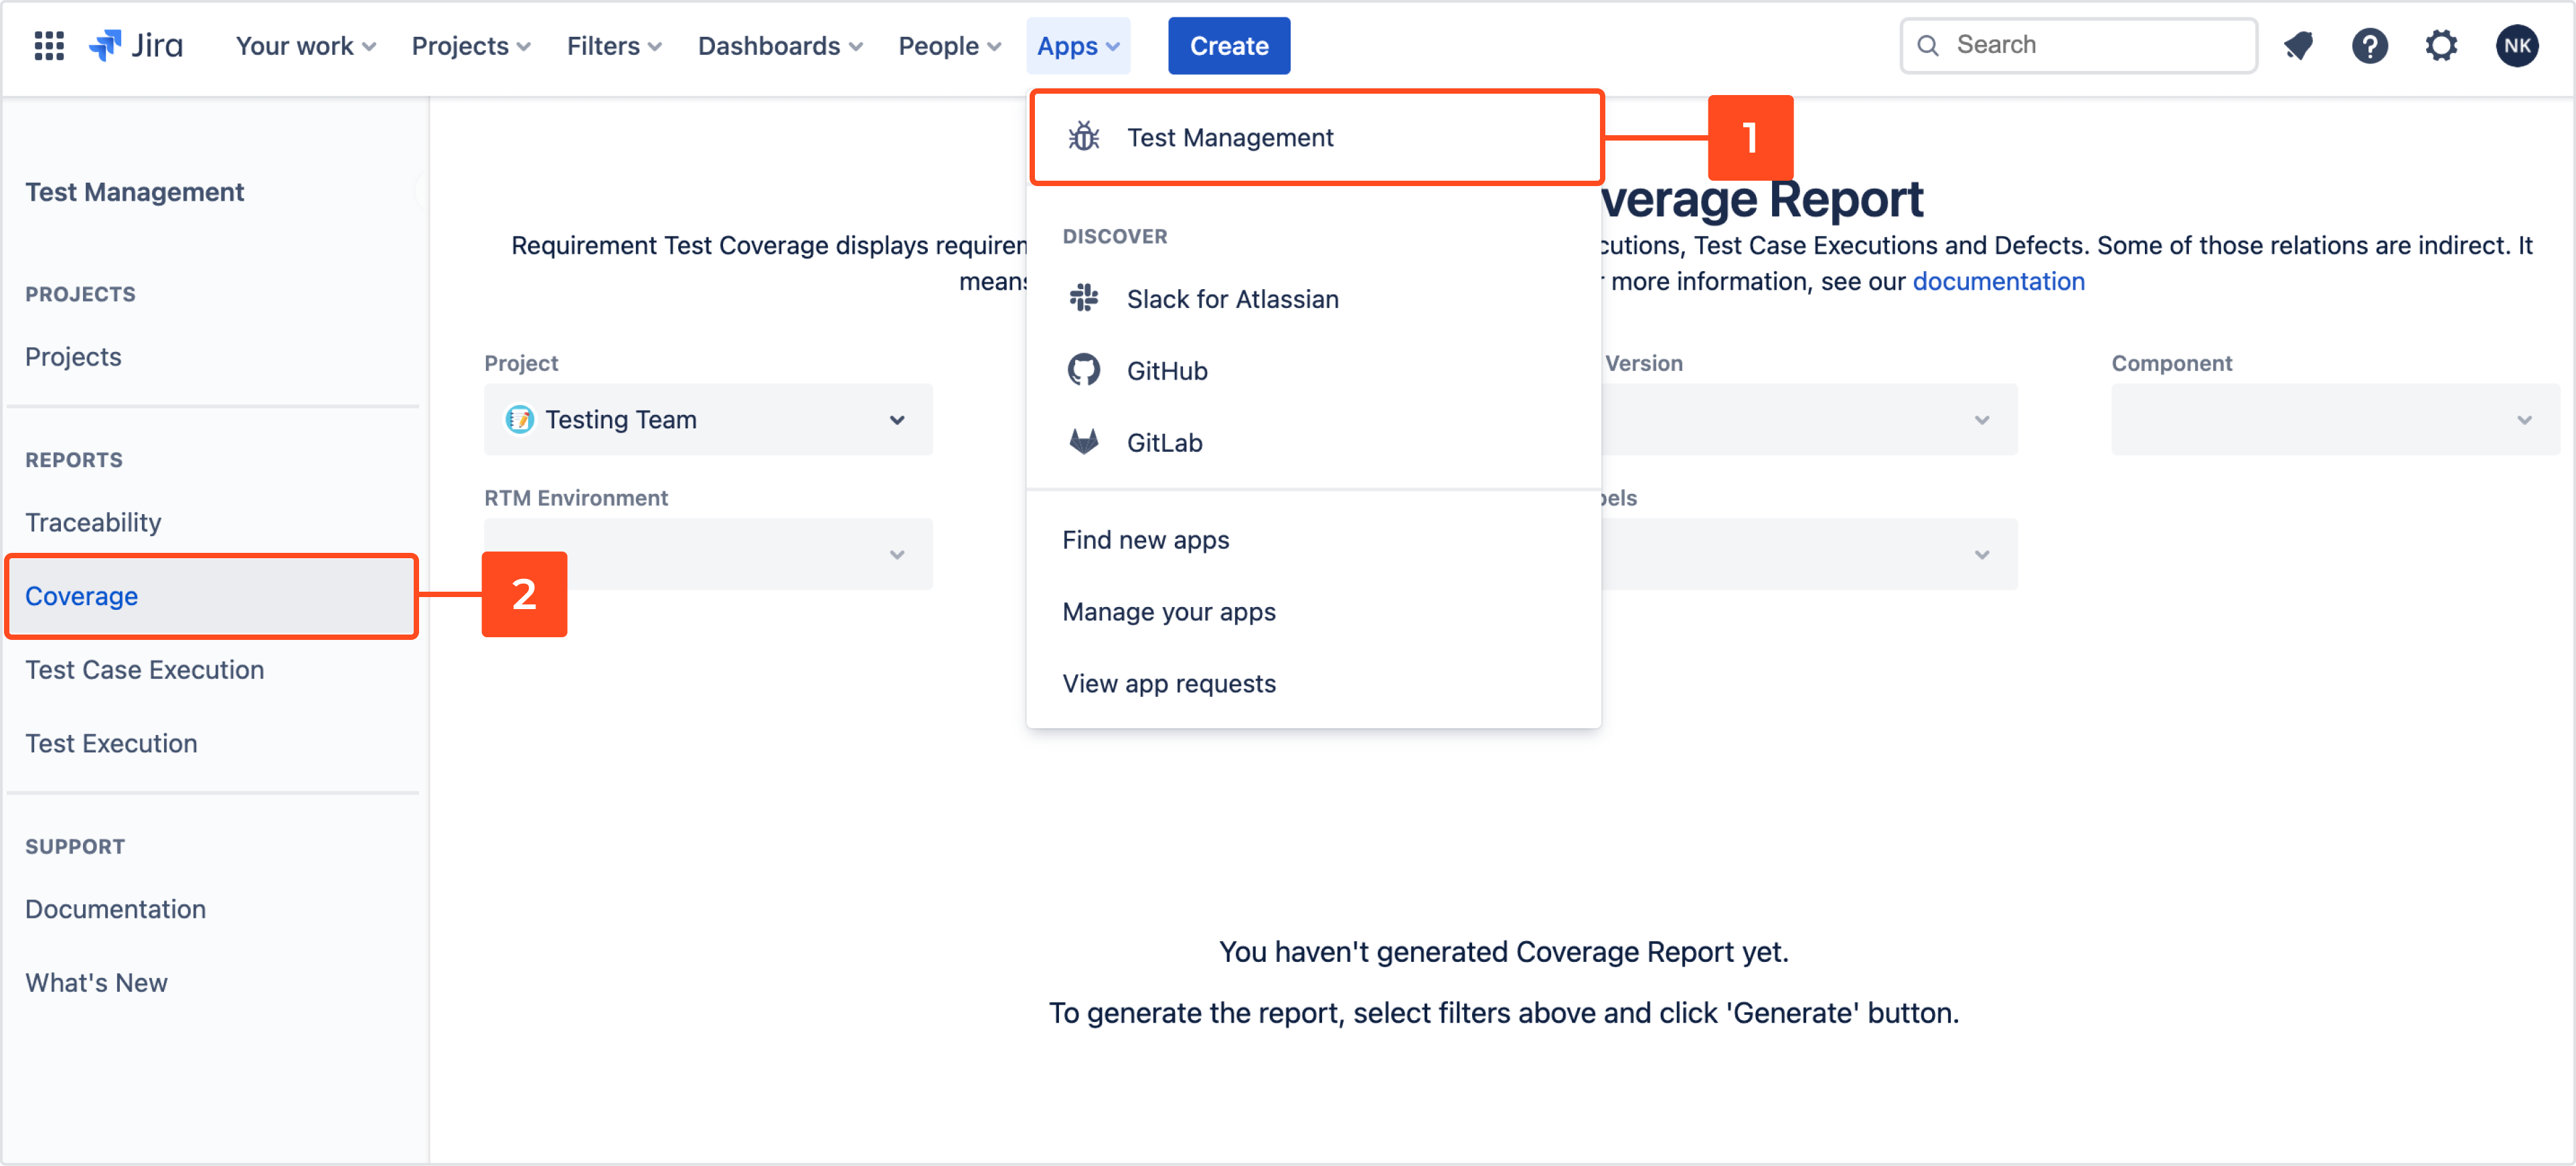 Coverage report with Requirements and Test Management for Jira app